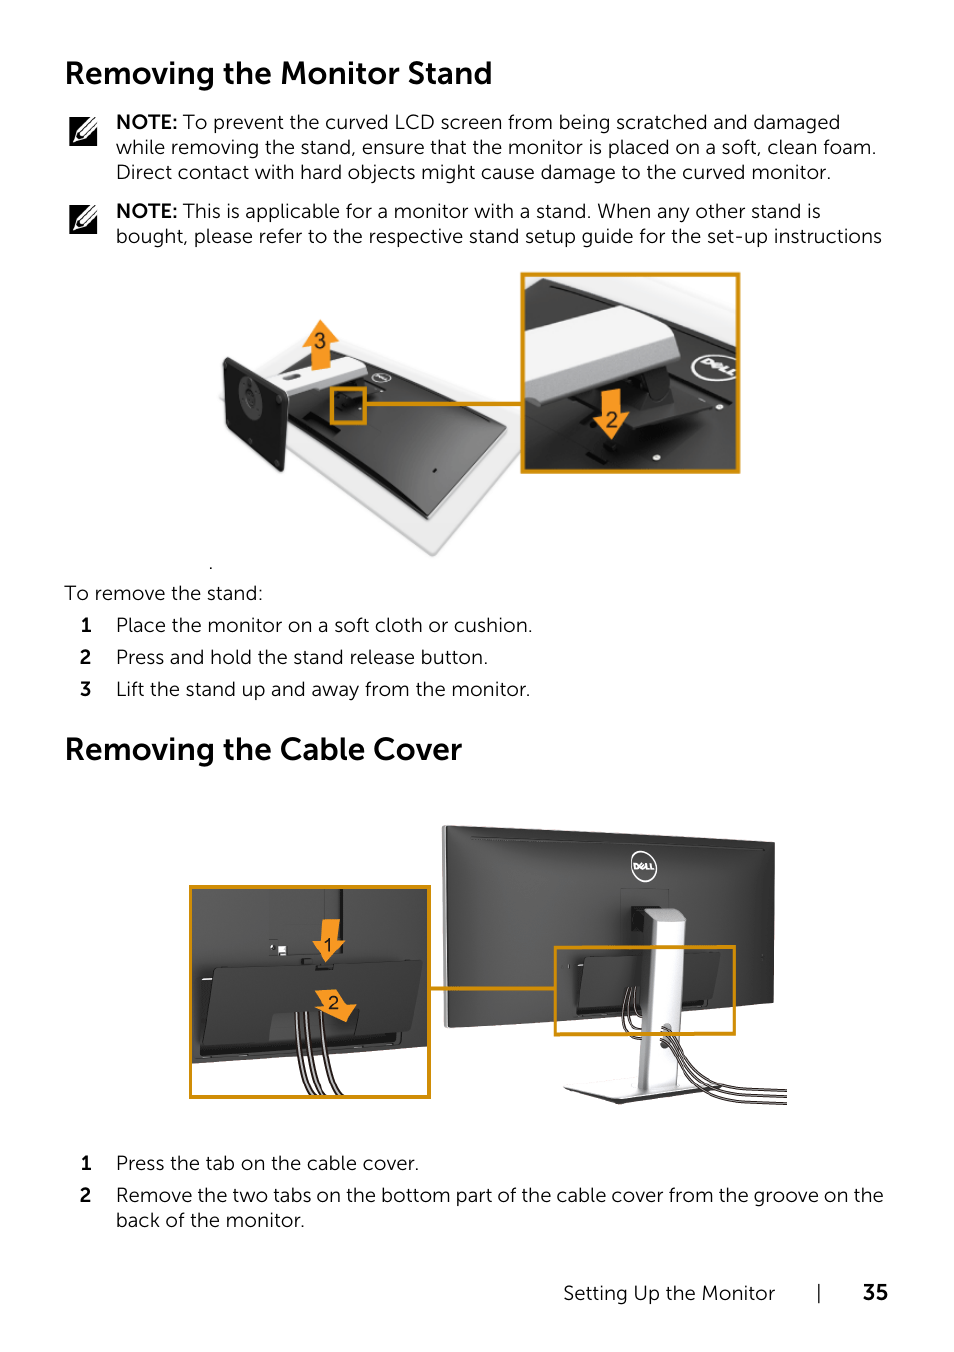 Removing the monitor stand, Removing the cable cover | Dell UltraSharp 34  Curved Monitor User Manual | Page 35 / 69